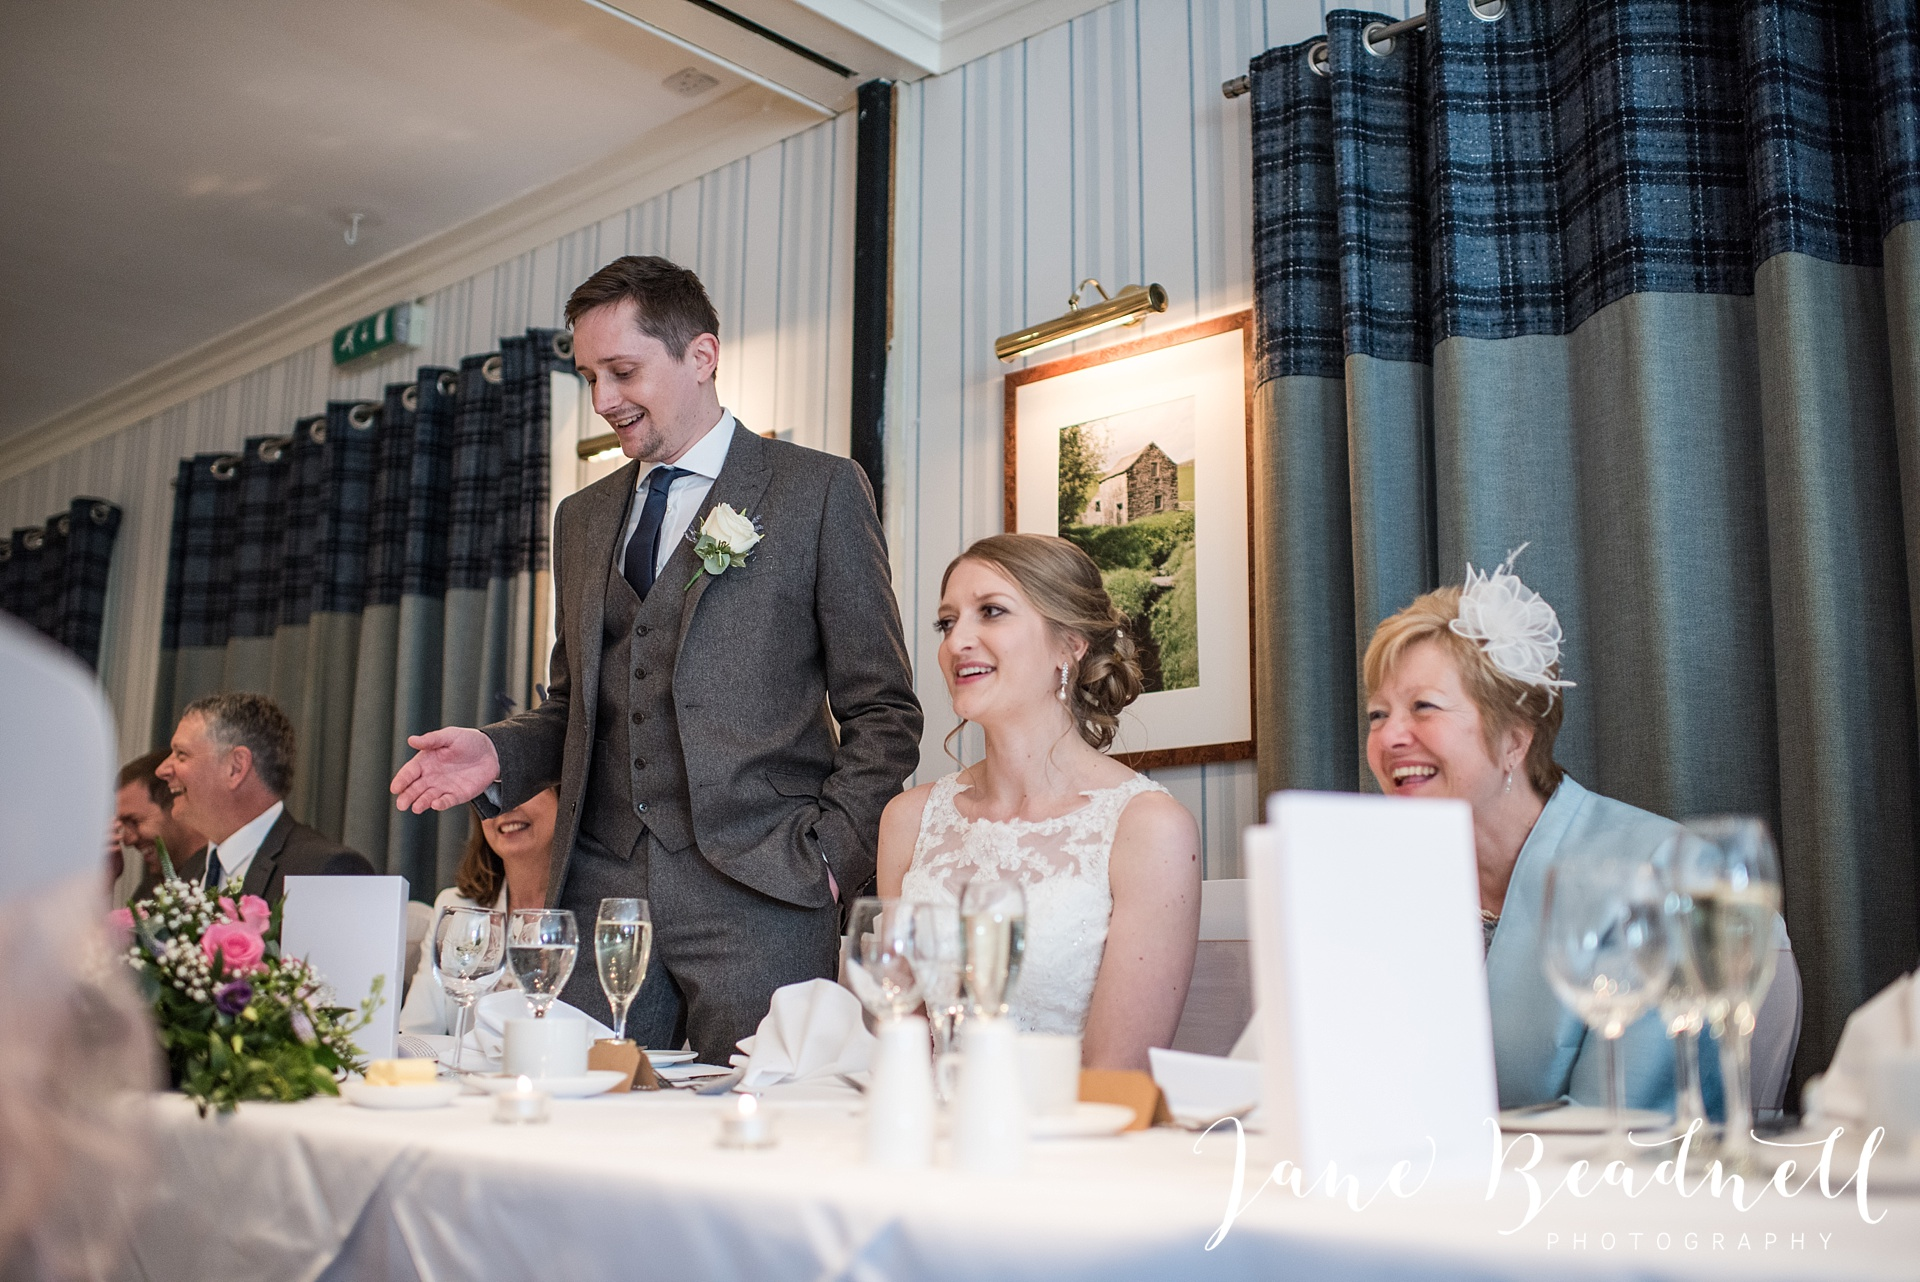 Otley Chevin Lodge wedding photography by Jane Beadnell Photography Leeds_0148